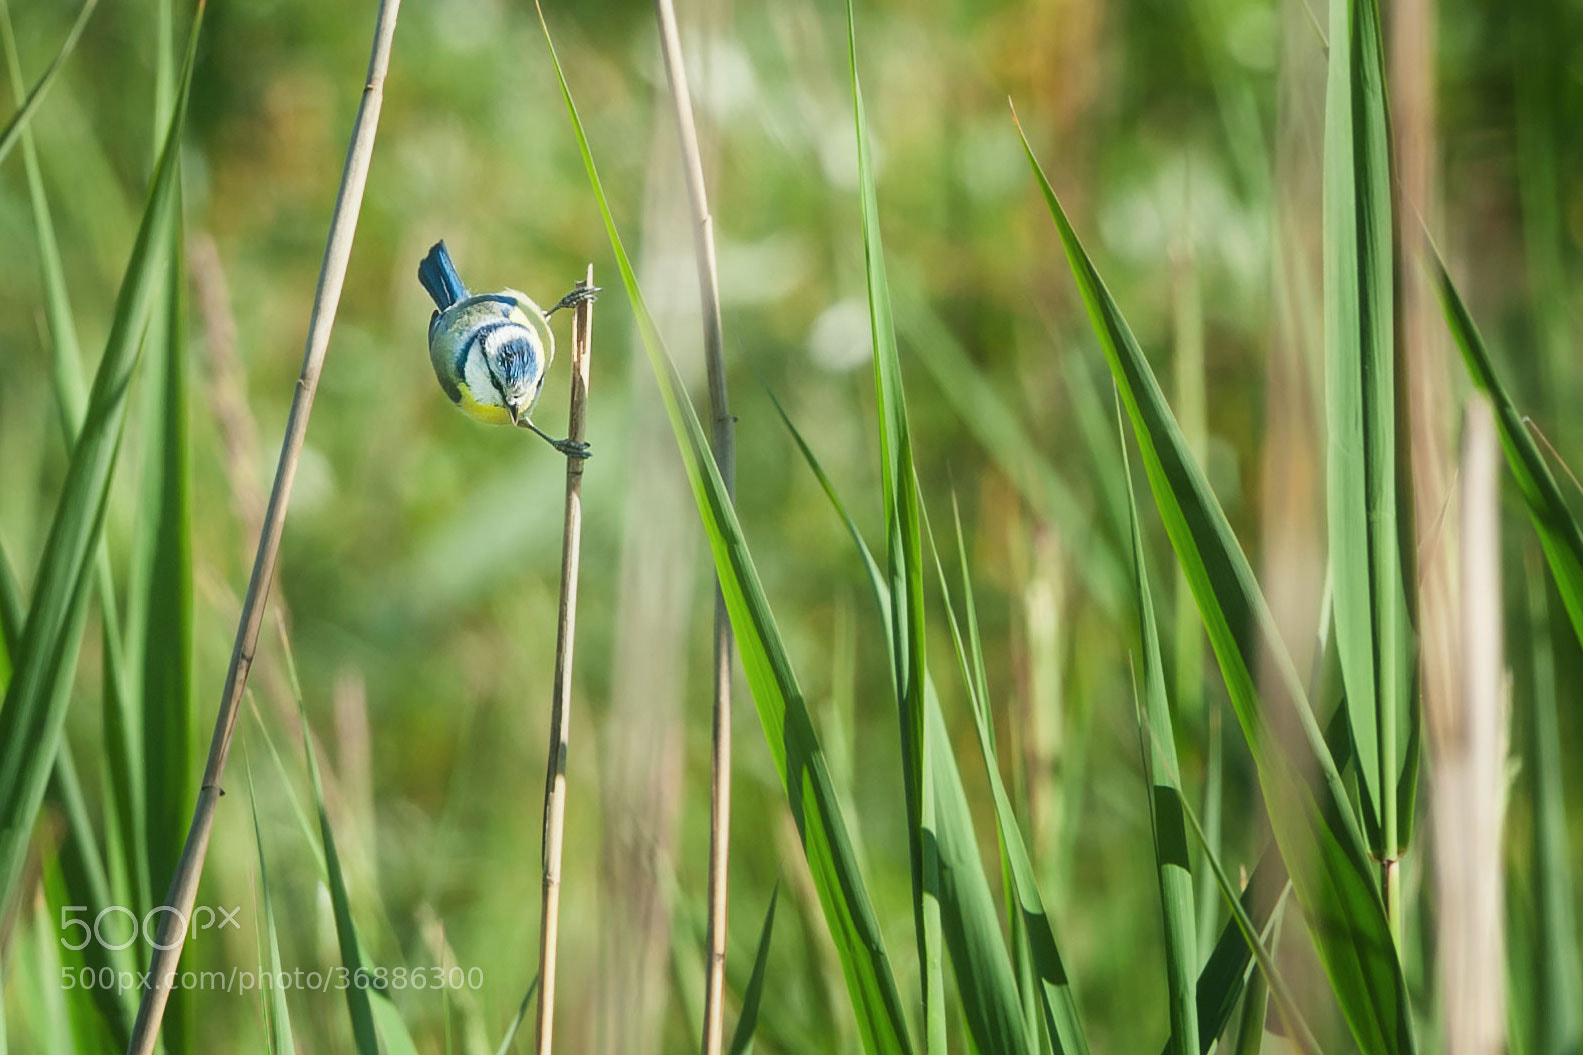 Photograph Meise im Schilf (2a) | Chickadee among the reeds (2a) by Franz Engels on 500px